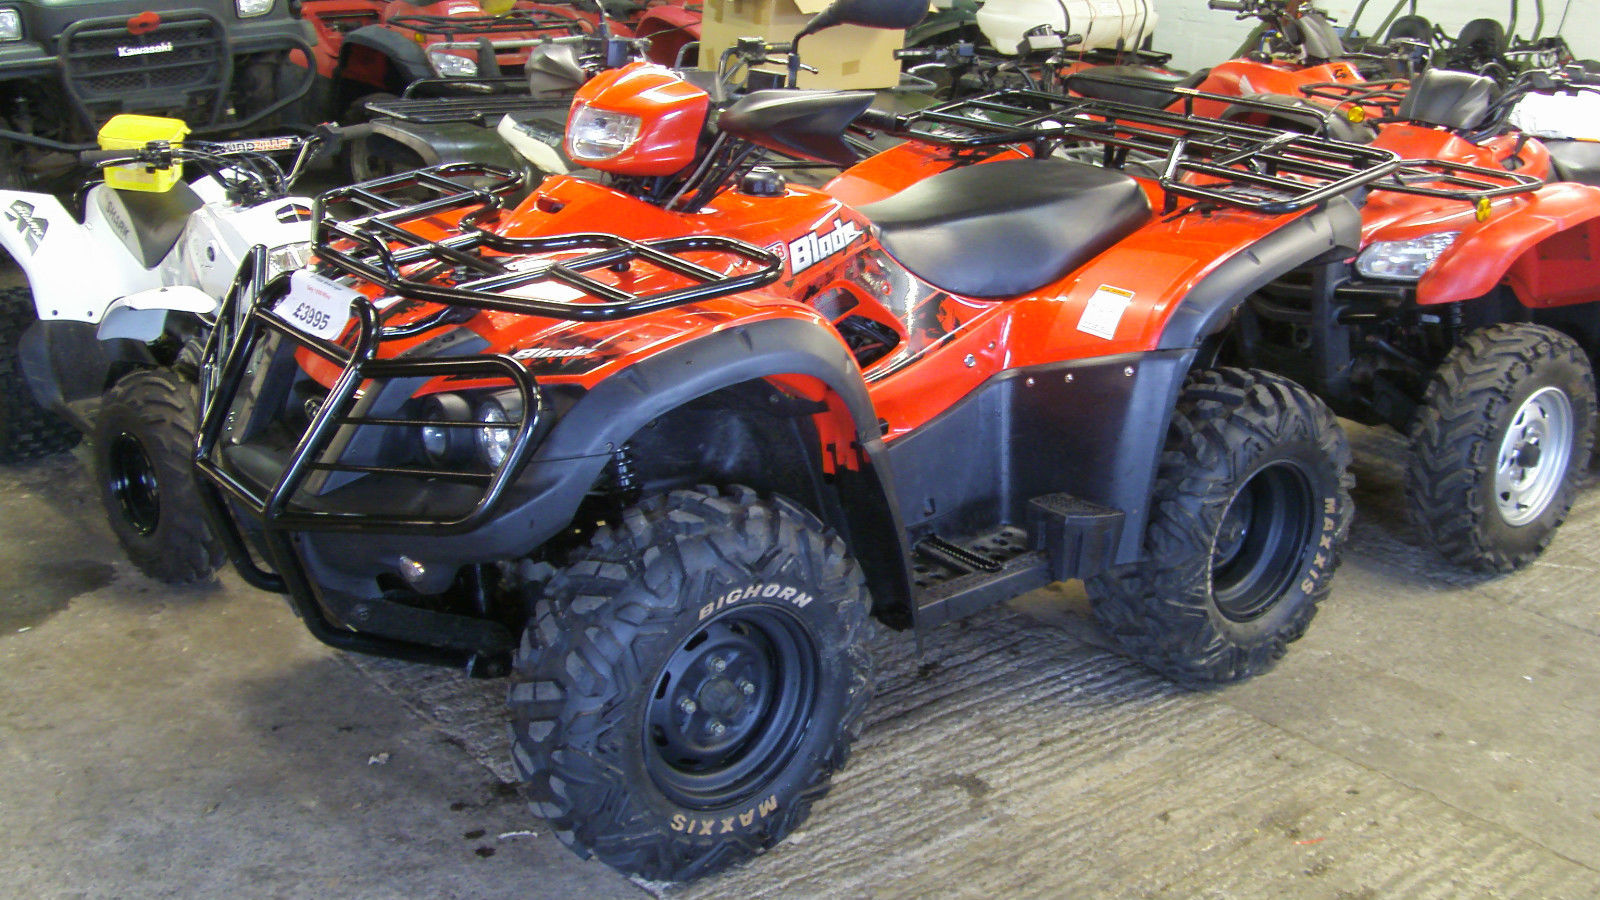 tgb blade 425 sl 4x4 2011automatic 61 plate road legal quad bike atv low miles. Black Bedroom Furniture Sets. Home Design Ideas